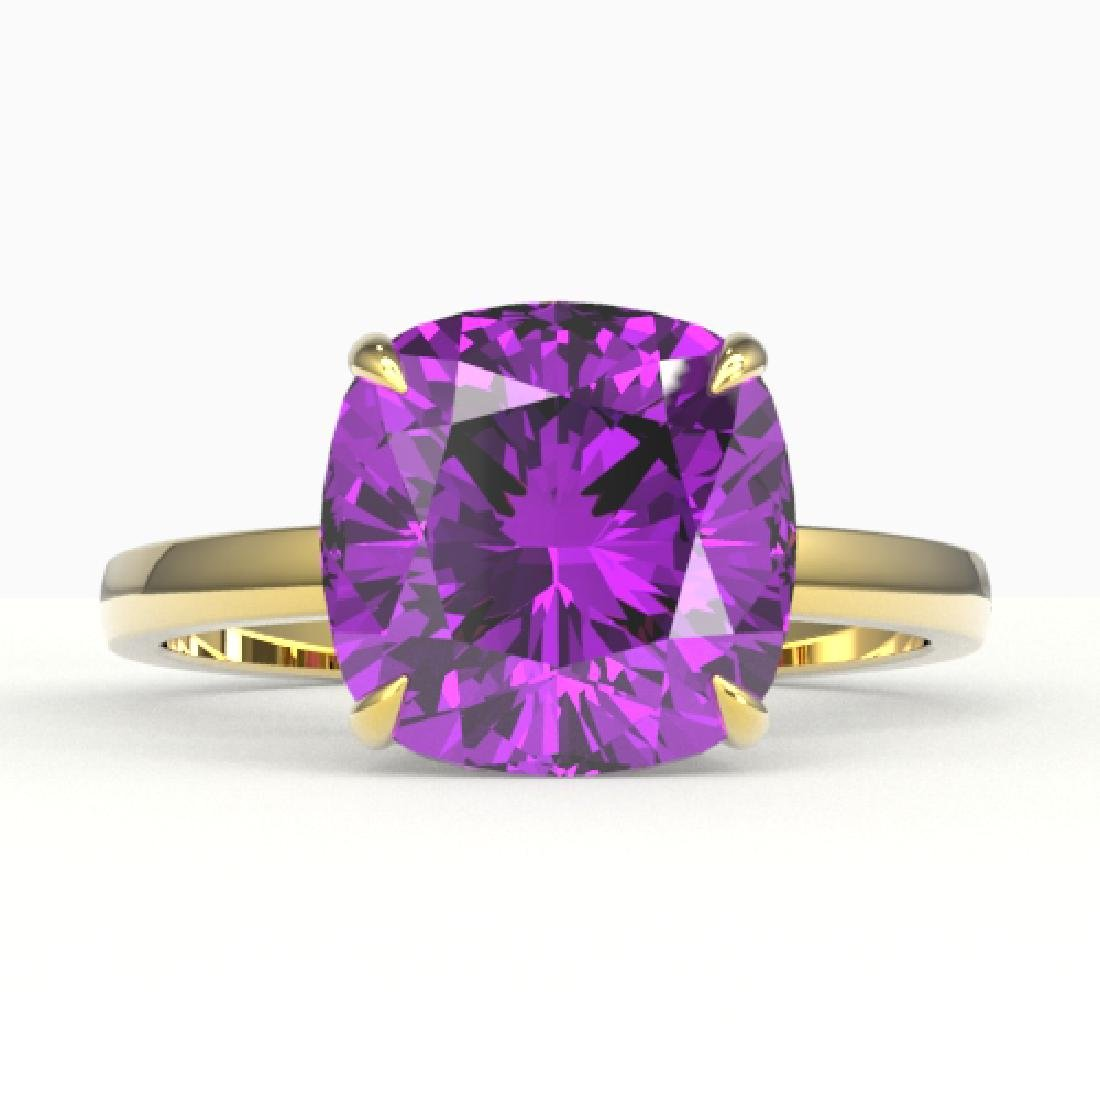 6 CTW Cushion Cut Amethyst Designer Solitaire